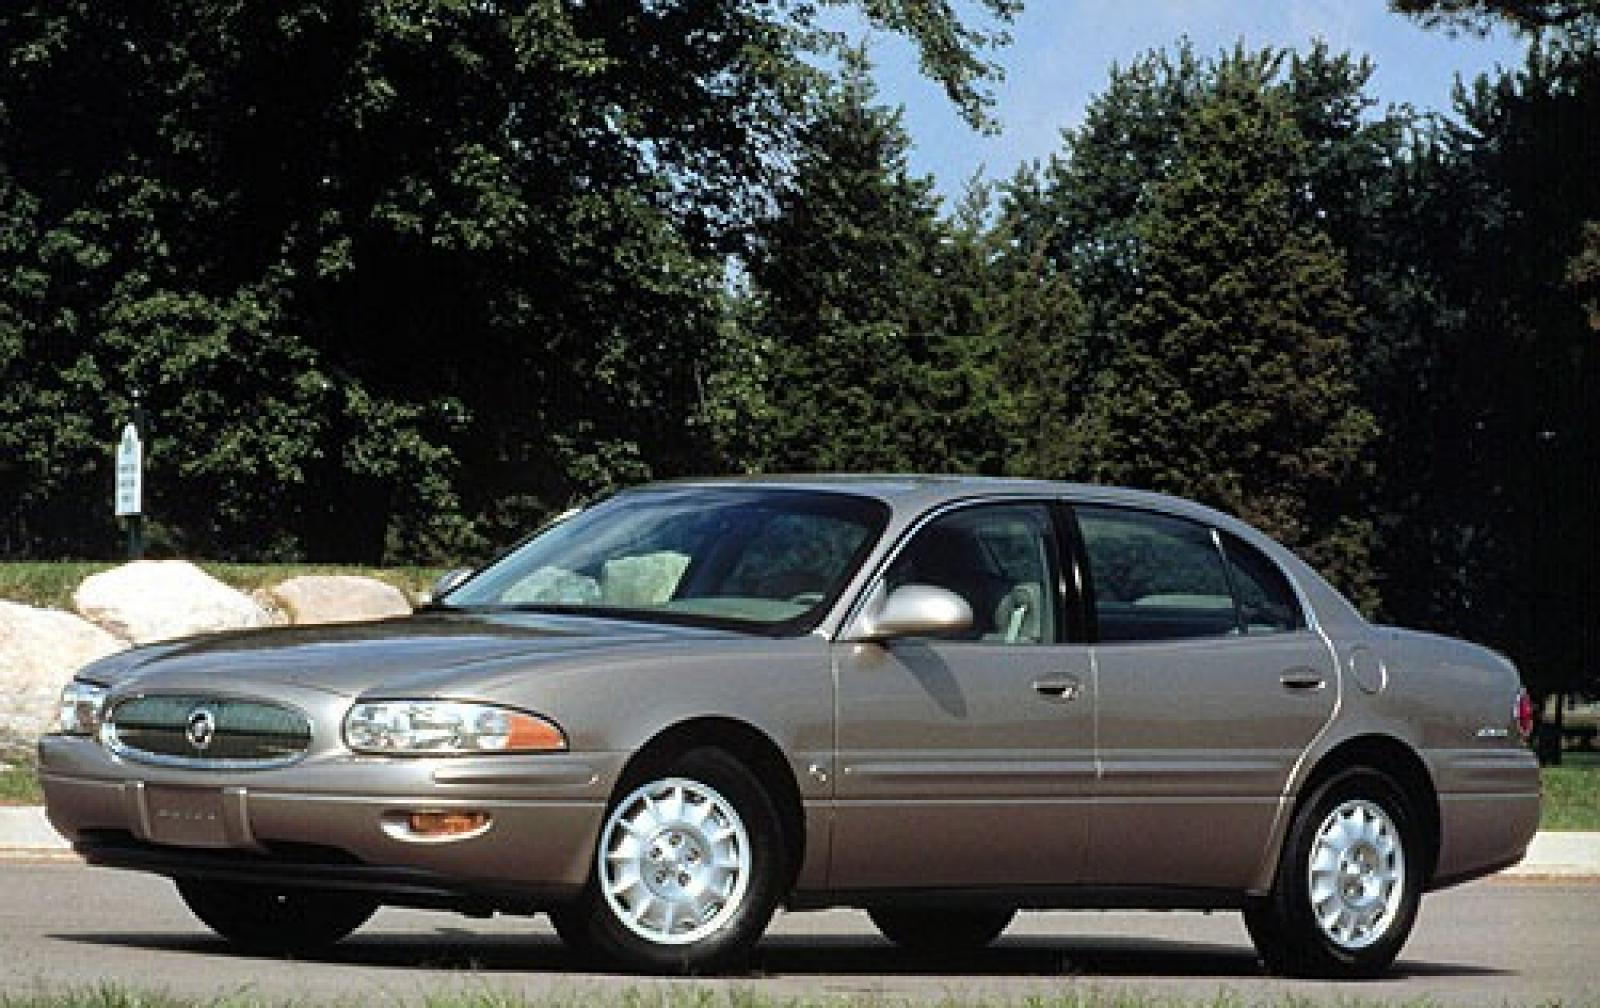 2005 buick lesabre information and photos zombiedrive. Black Bedroom Furniture Sets. Home Design Ideas